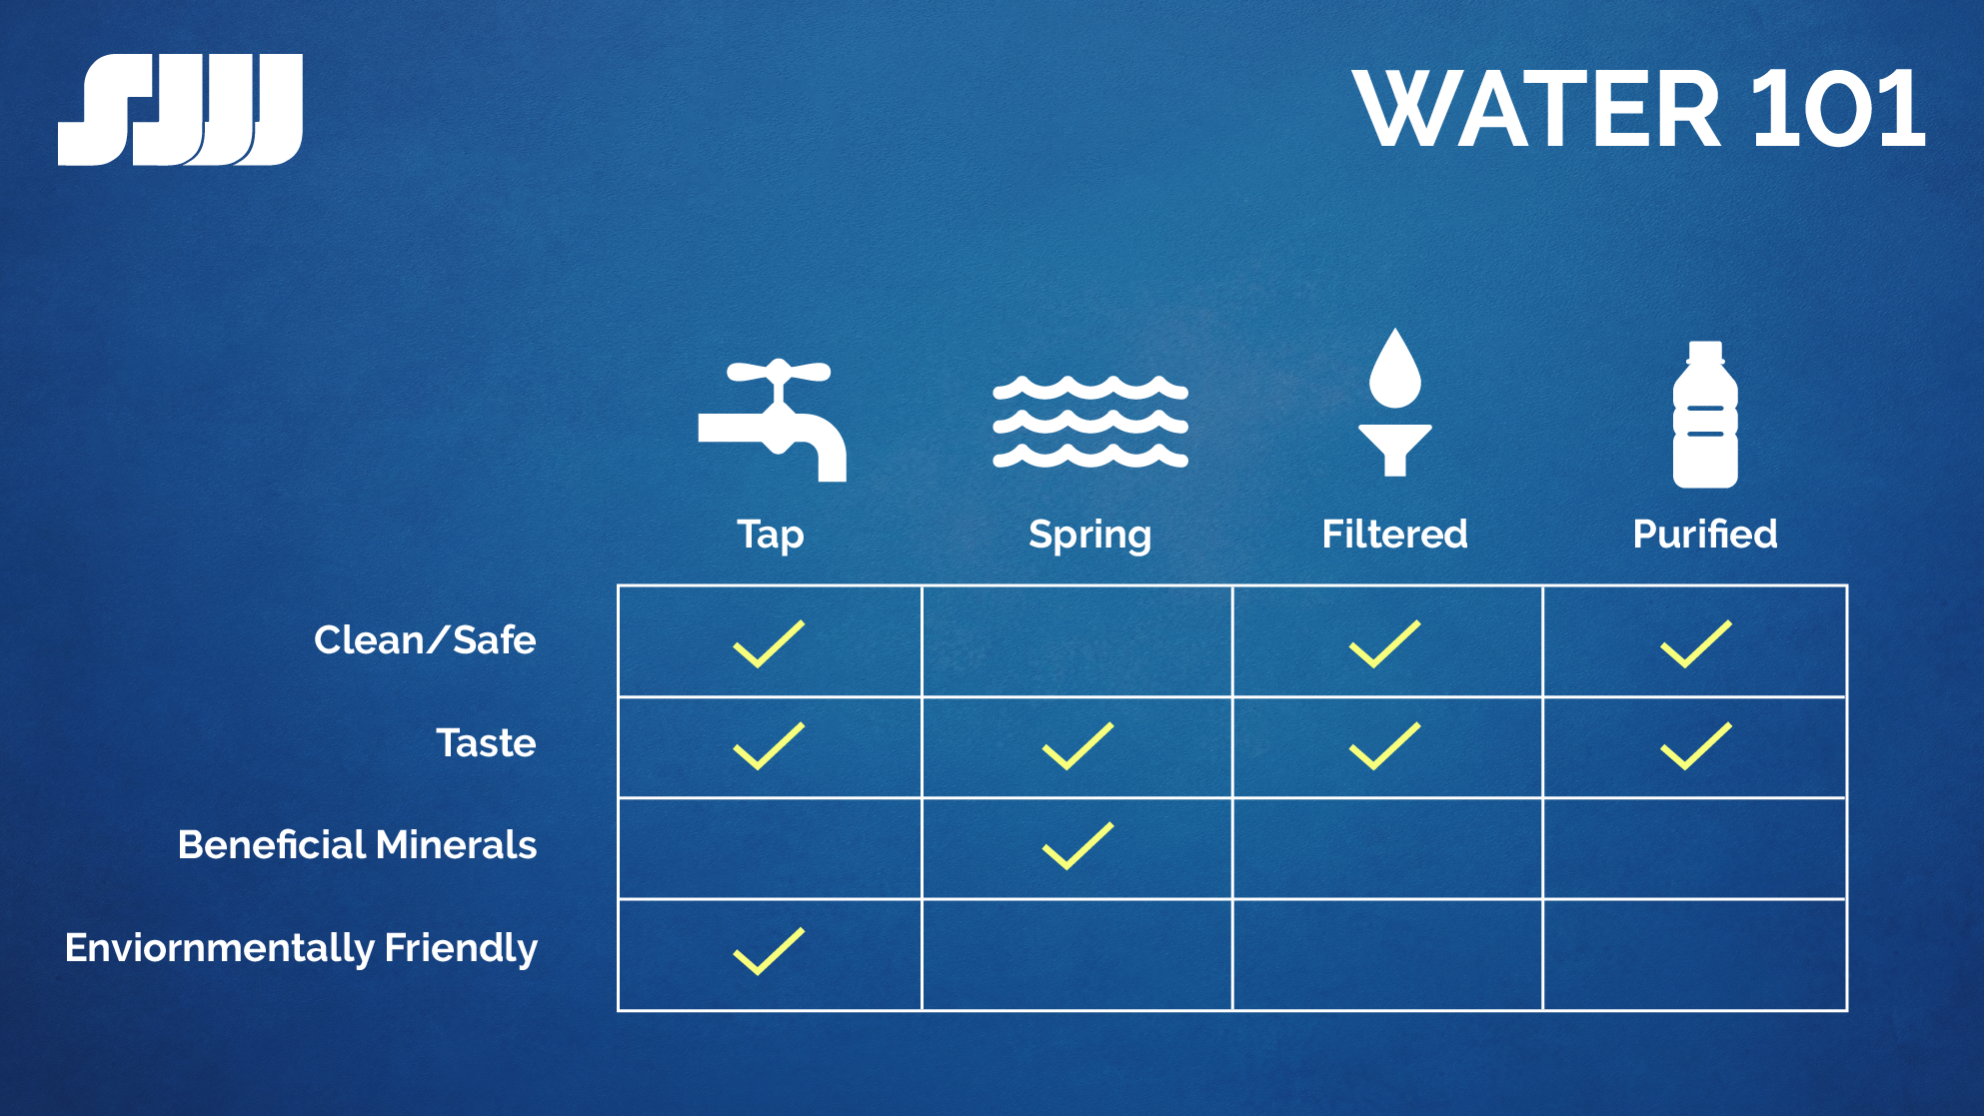 Graphic breaking down water types, safety, mineral content and impact on the environment